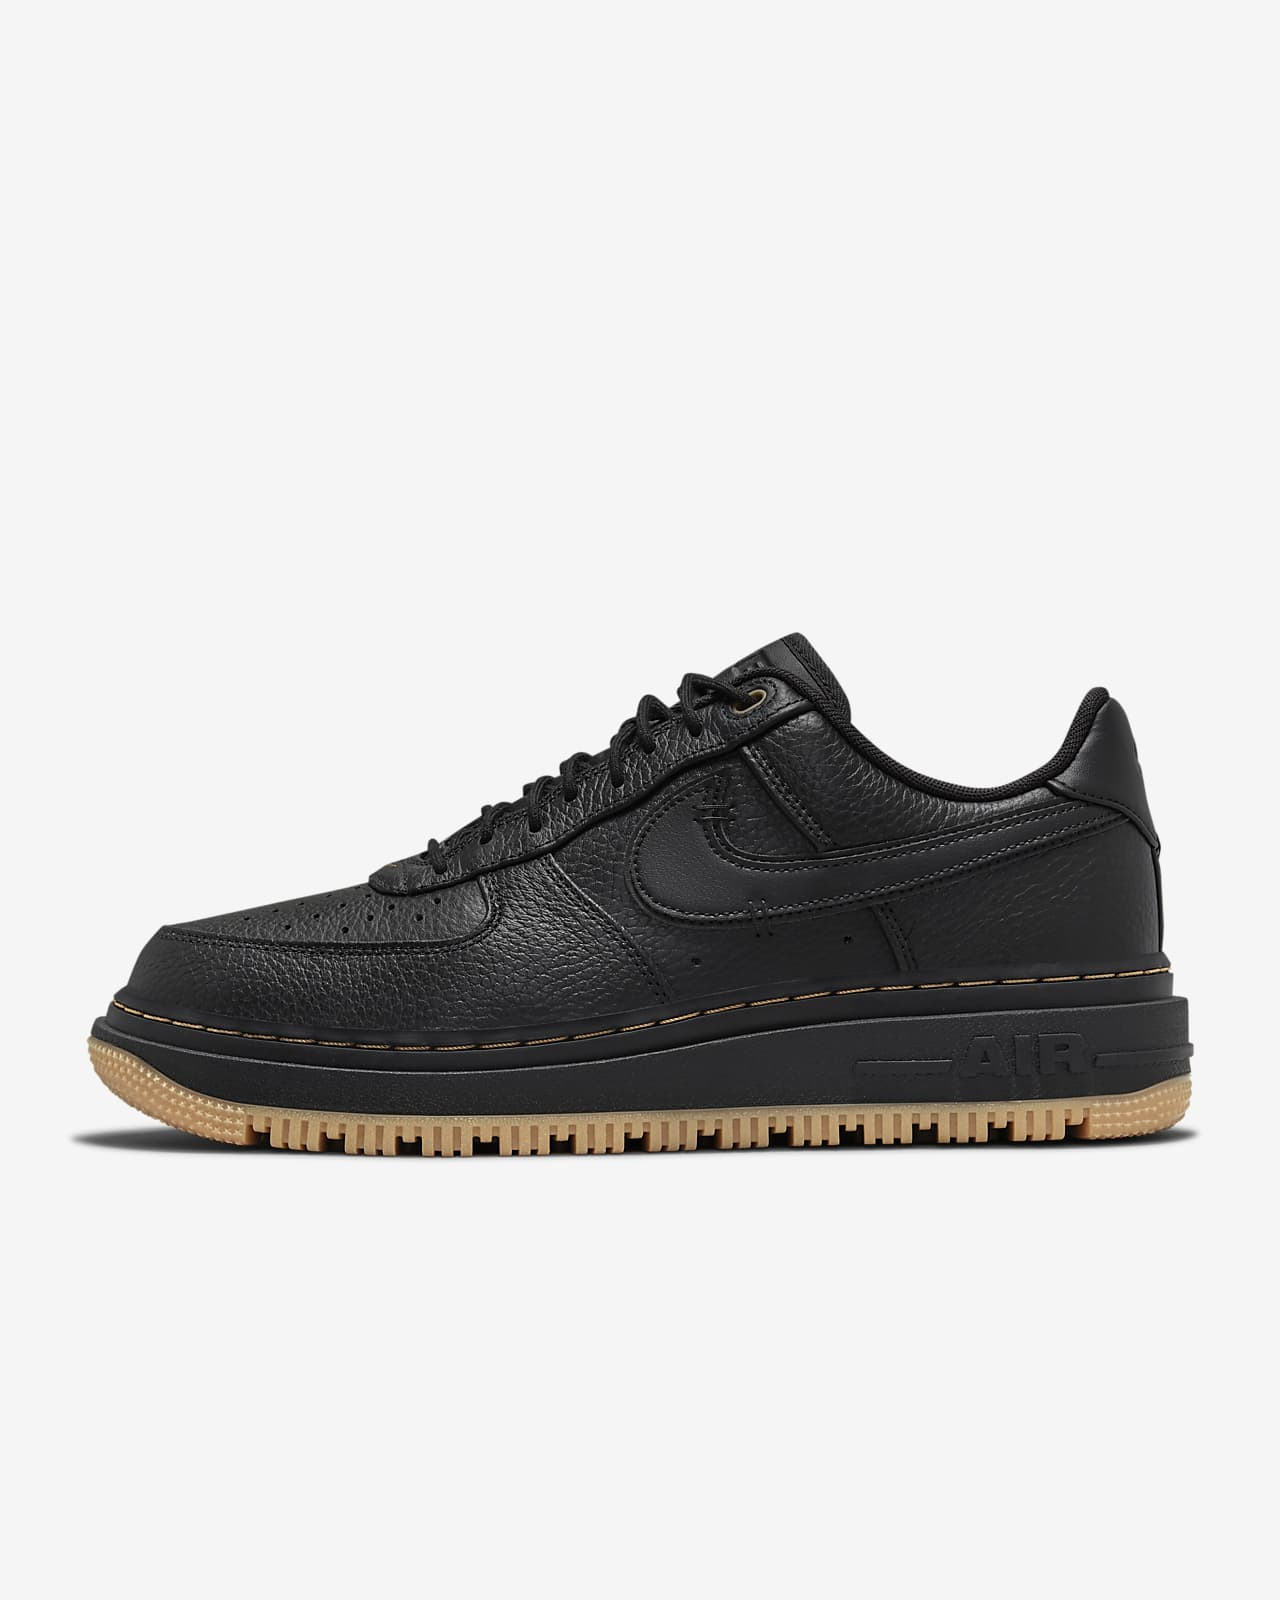 Chaussures Nike Air Force 1 Luxe pour Homme